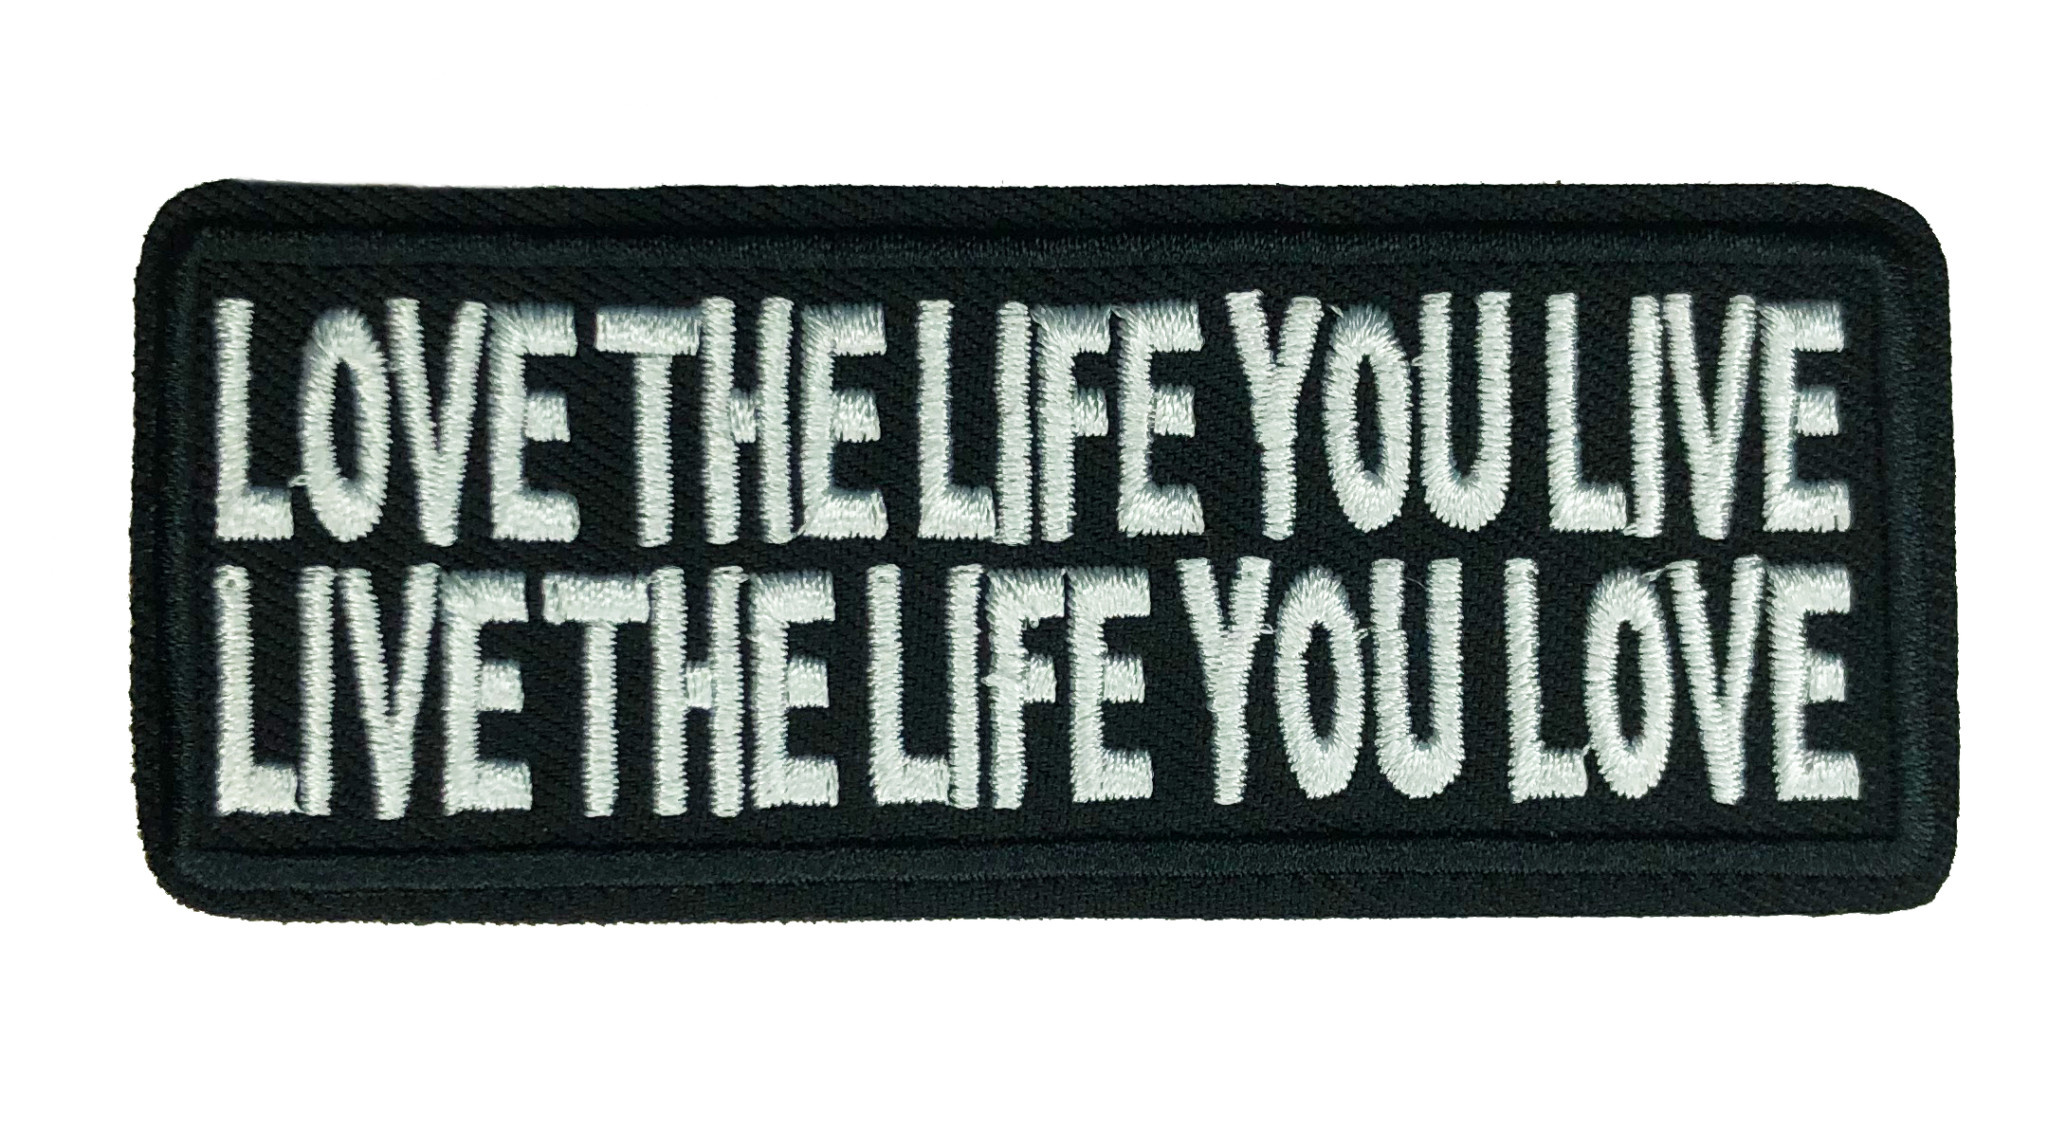 THE SHOP 8 STATEMENT PATCHES-9